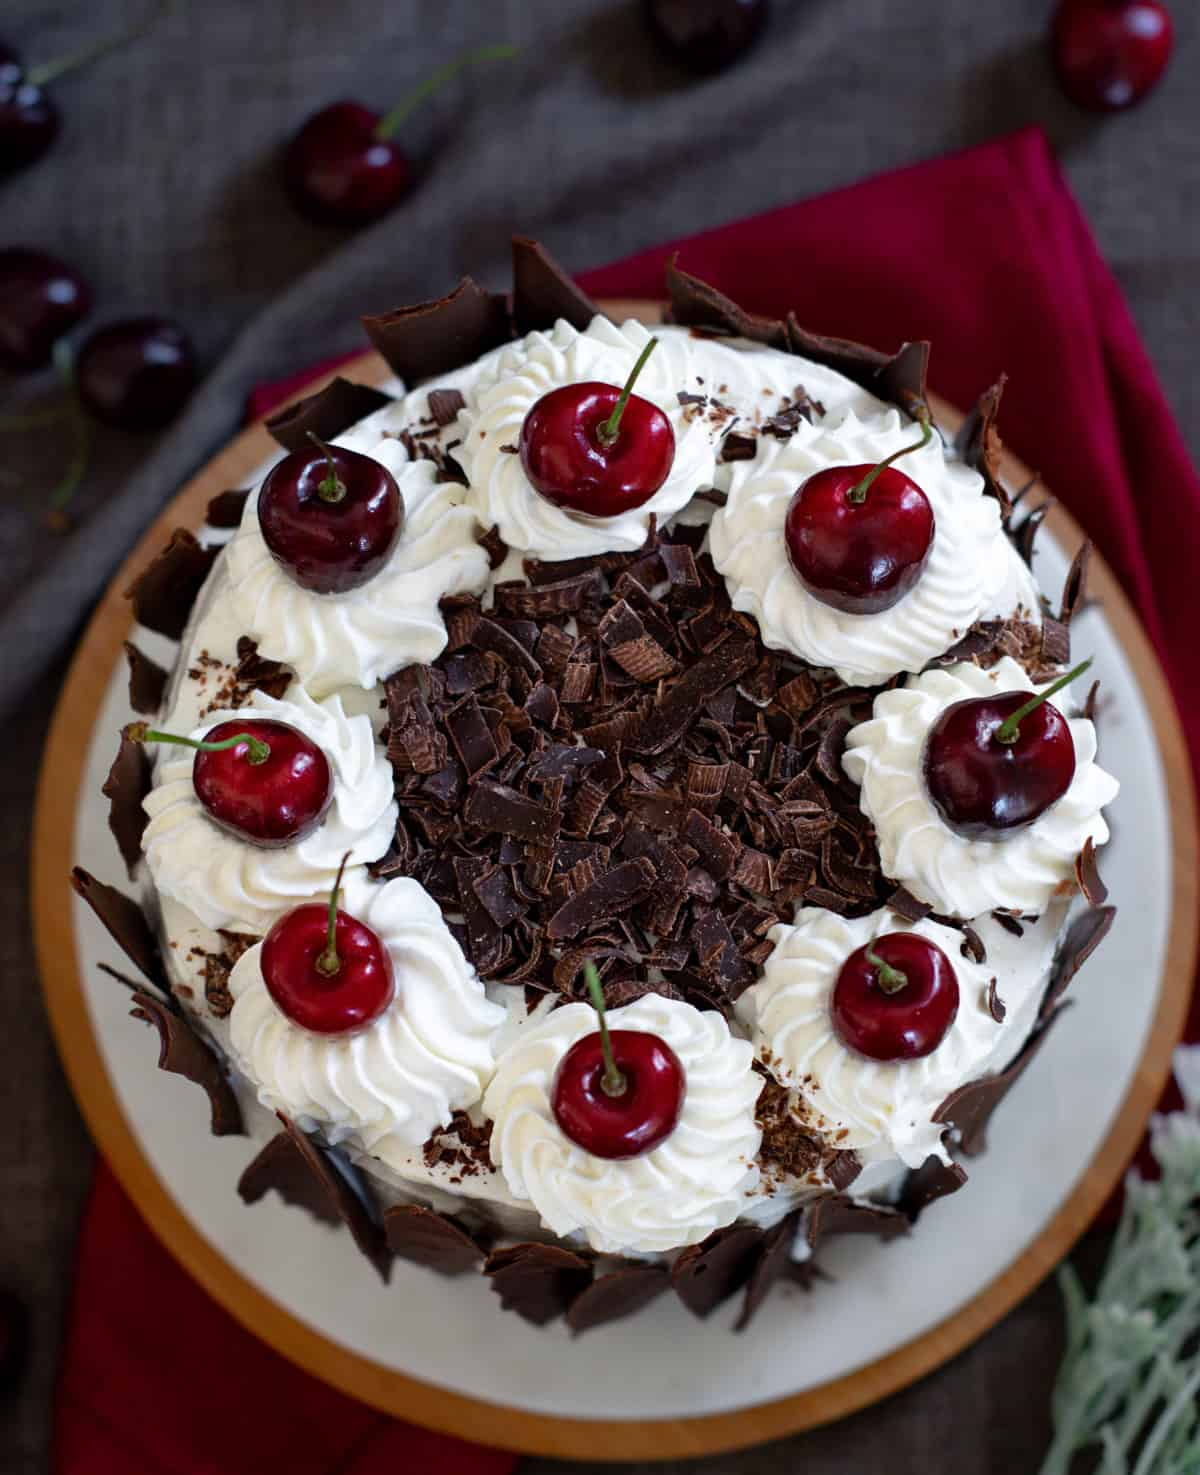 Eggless black forest cake served on dish with a red napkin